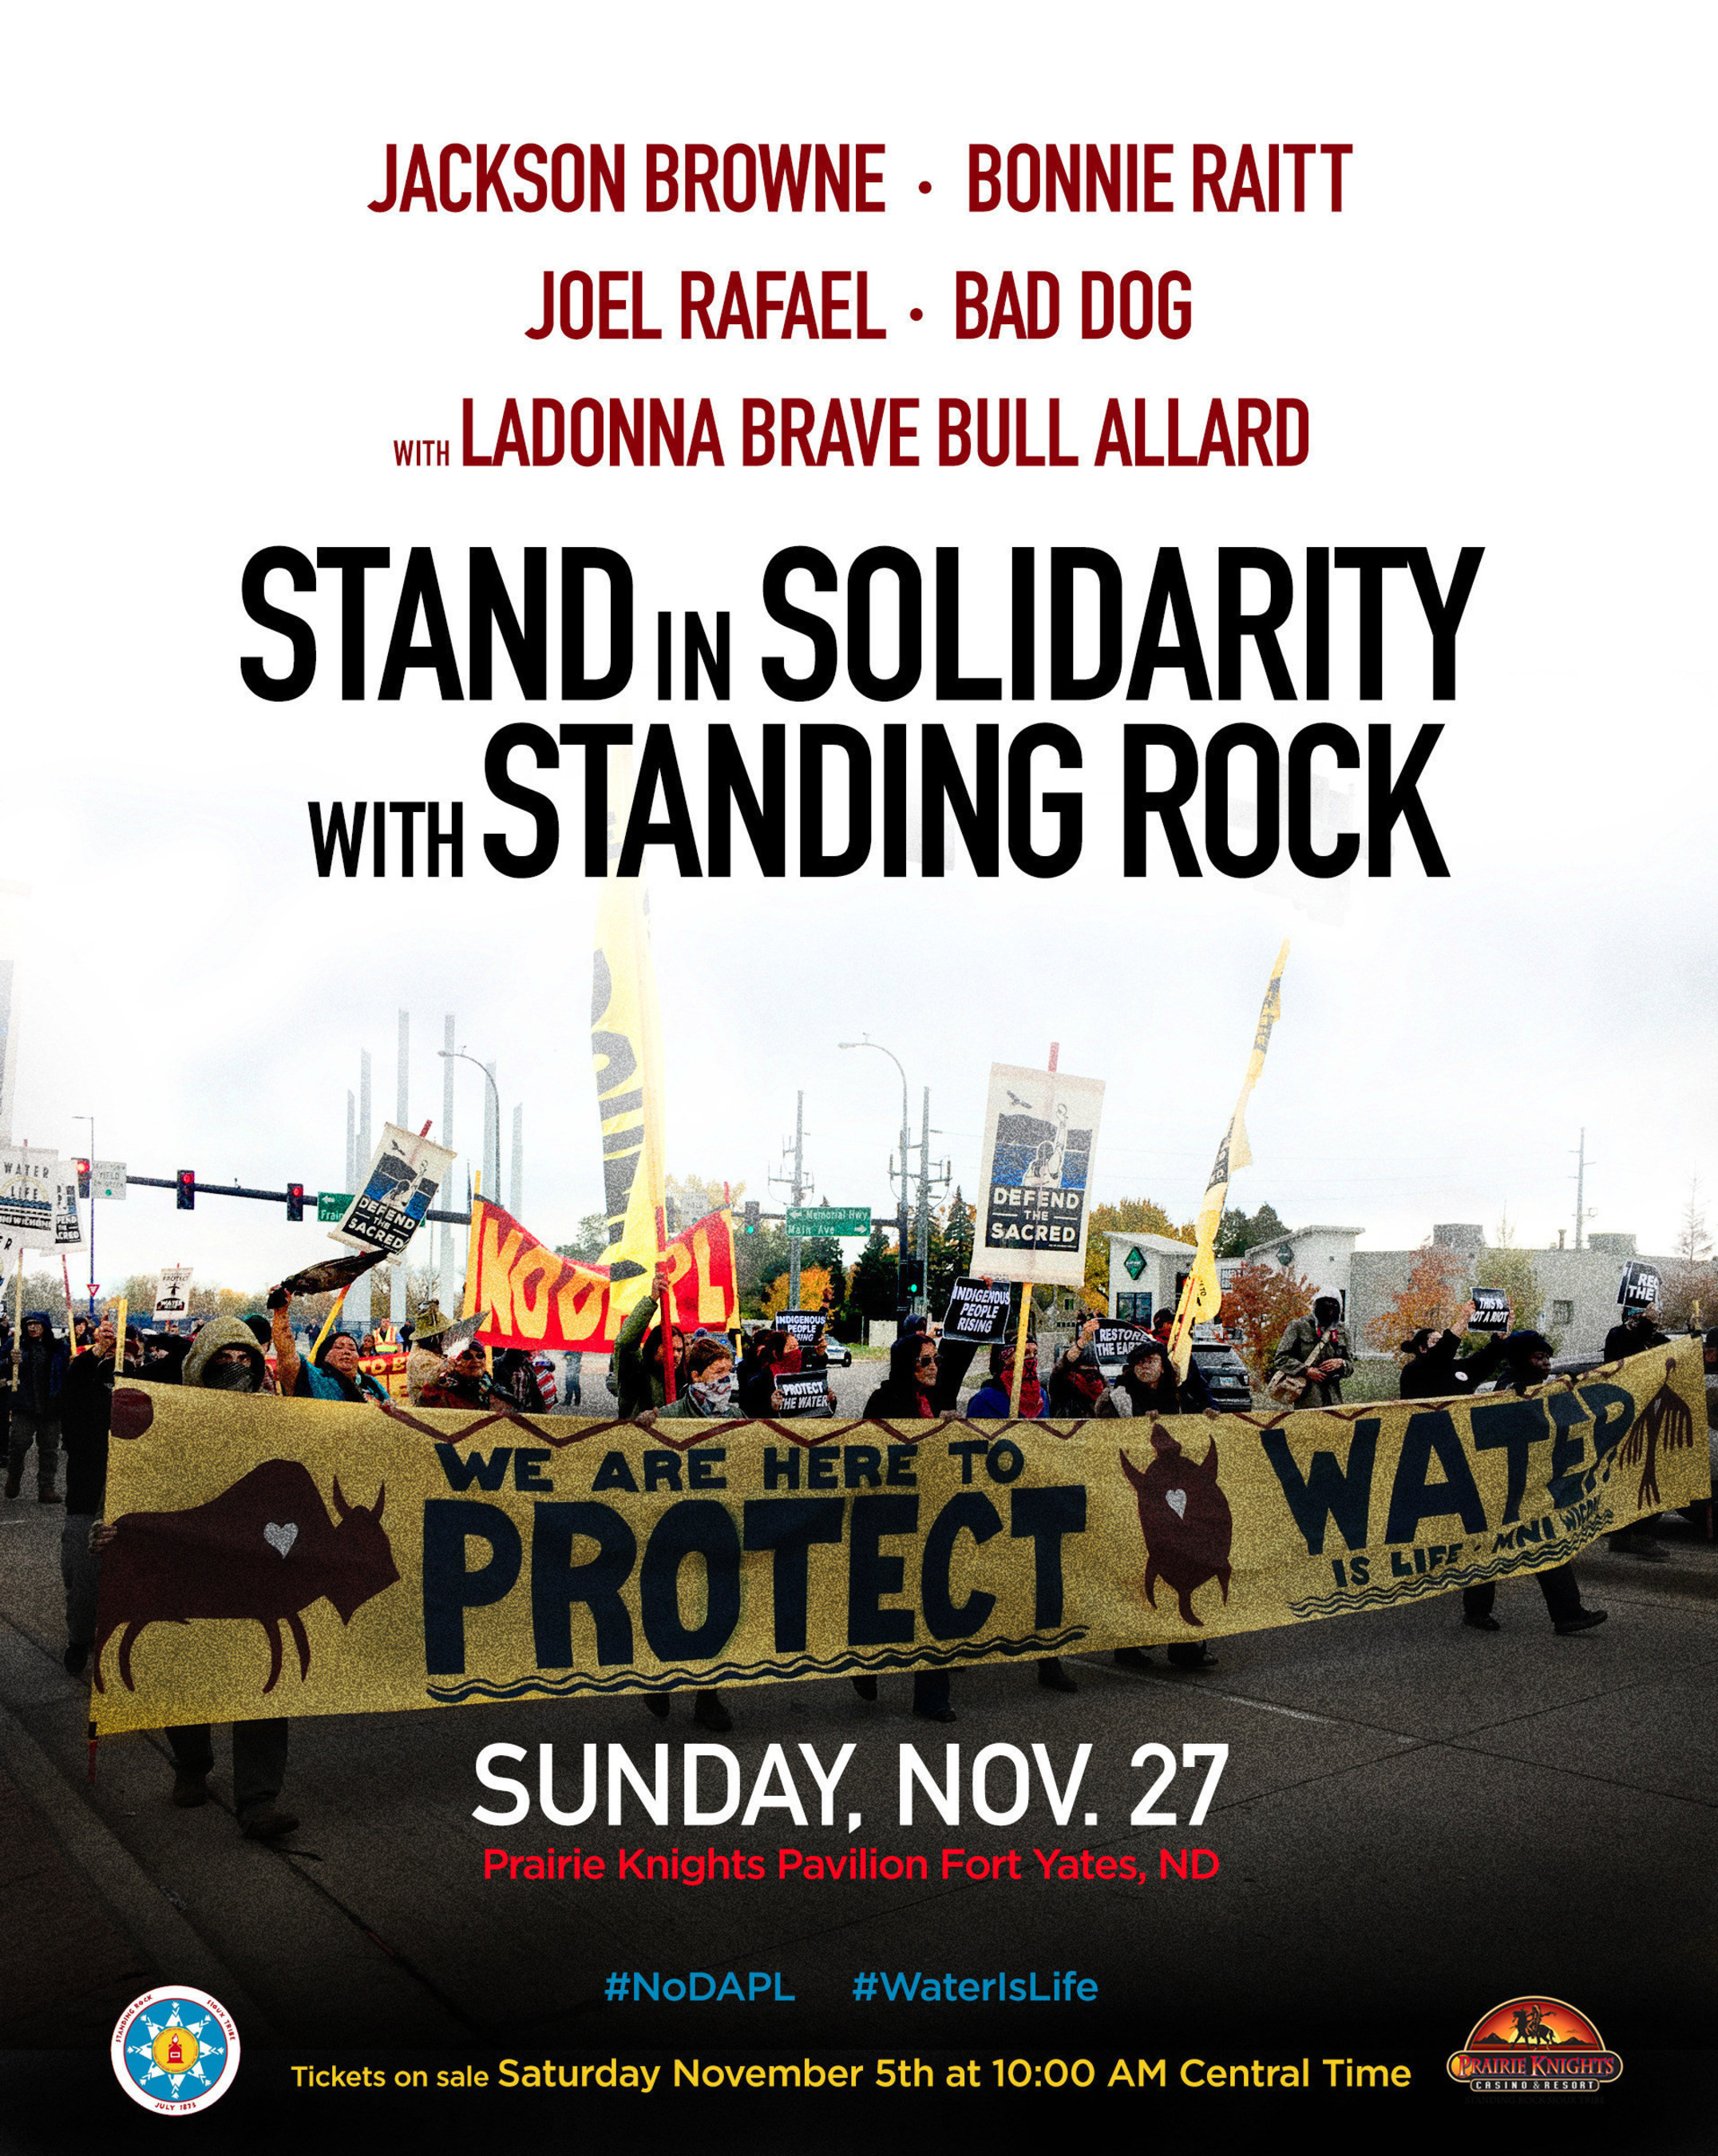 Jackson BrowneAndBonnieRaittBenefit Concert At Standing Rock To Stand In Solidarity With Standing Rock - Sunday, November 27, 2016at Prairie Knights Pavilion in Fort Yates, ND